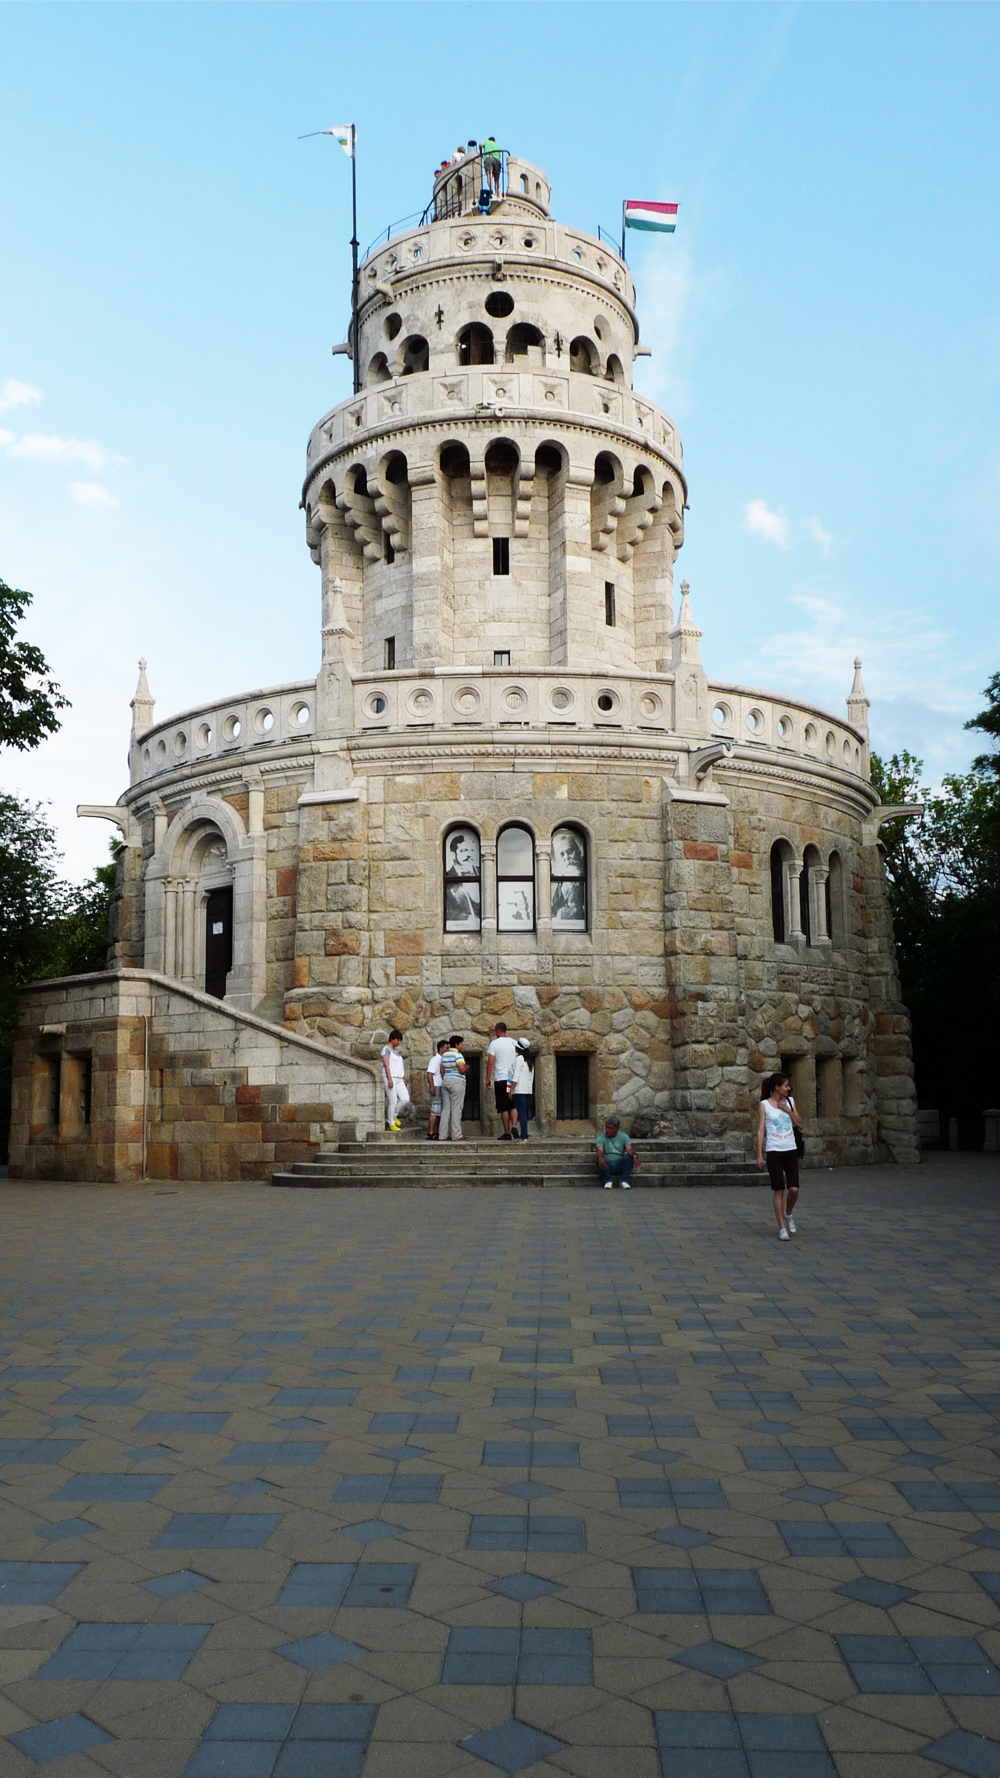 Elisabeth Lookout Tower, János Hill - Top 5 viewpoints in Budapest Hungary, recommended by a local | Aliz's Wonderland